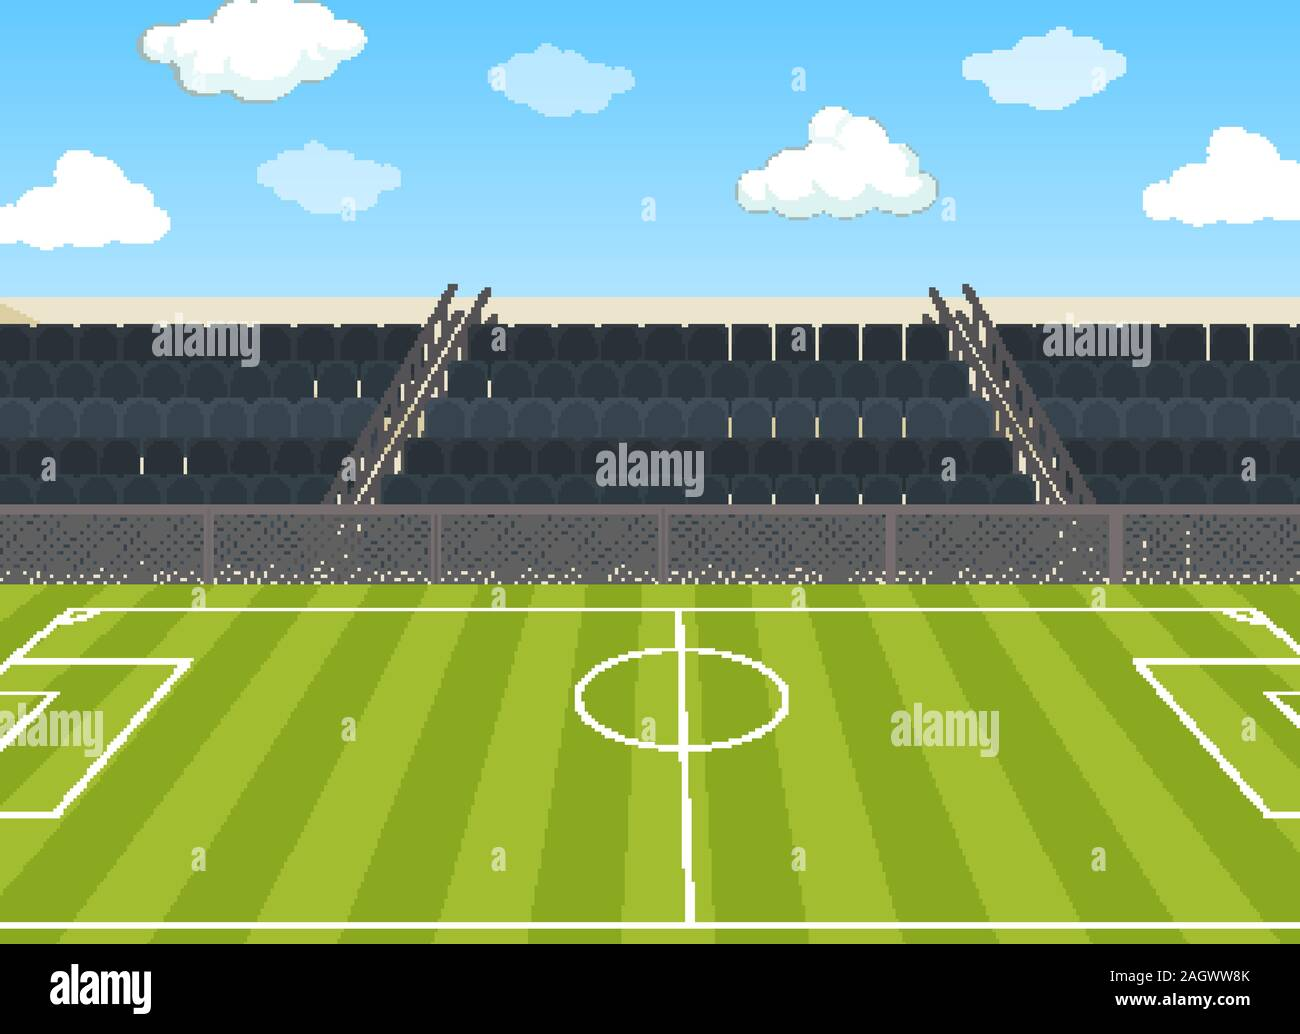 background scene with football field and stadium illustration stock vector image art alamy https www alamy com background scene with football field and stadium illustration image337400131 html